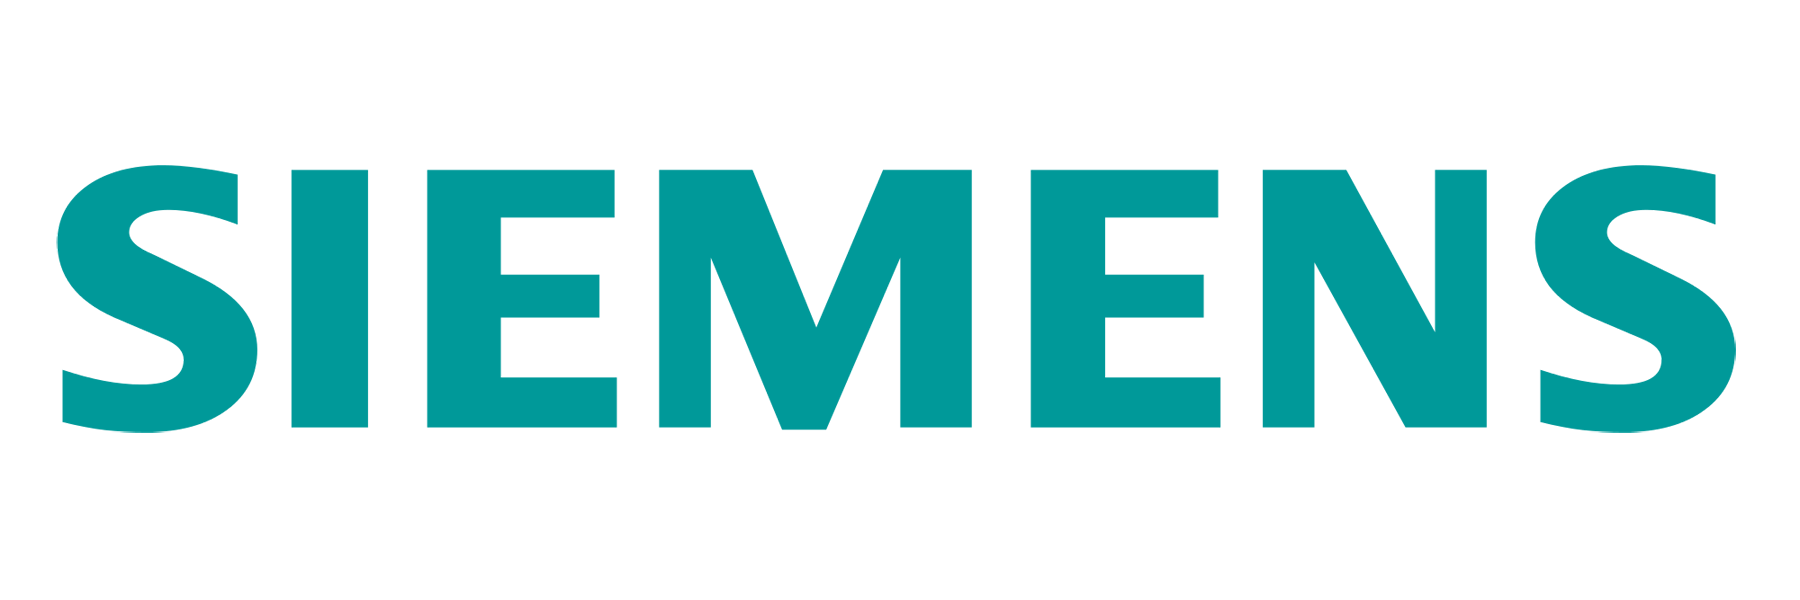 https://www.oms-is.eu/wp-content/uploads/2018/09/Siemens-Logo.png